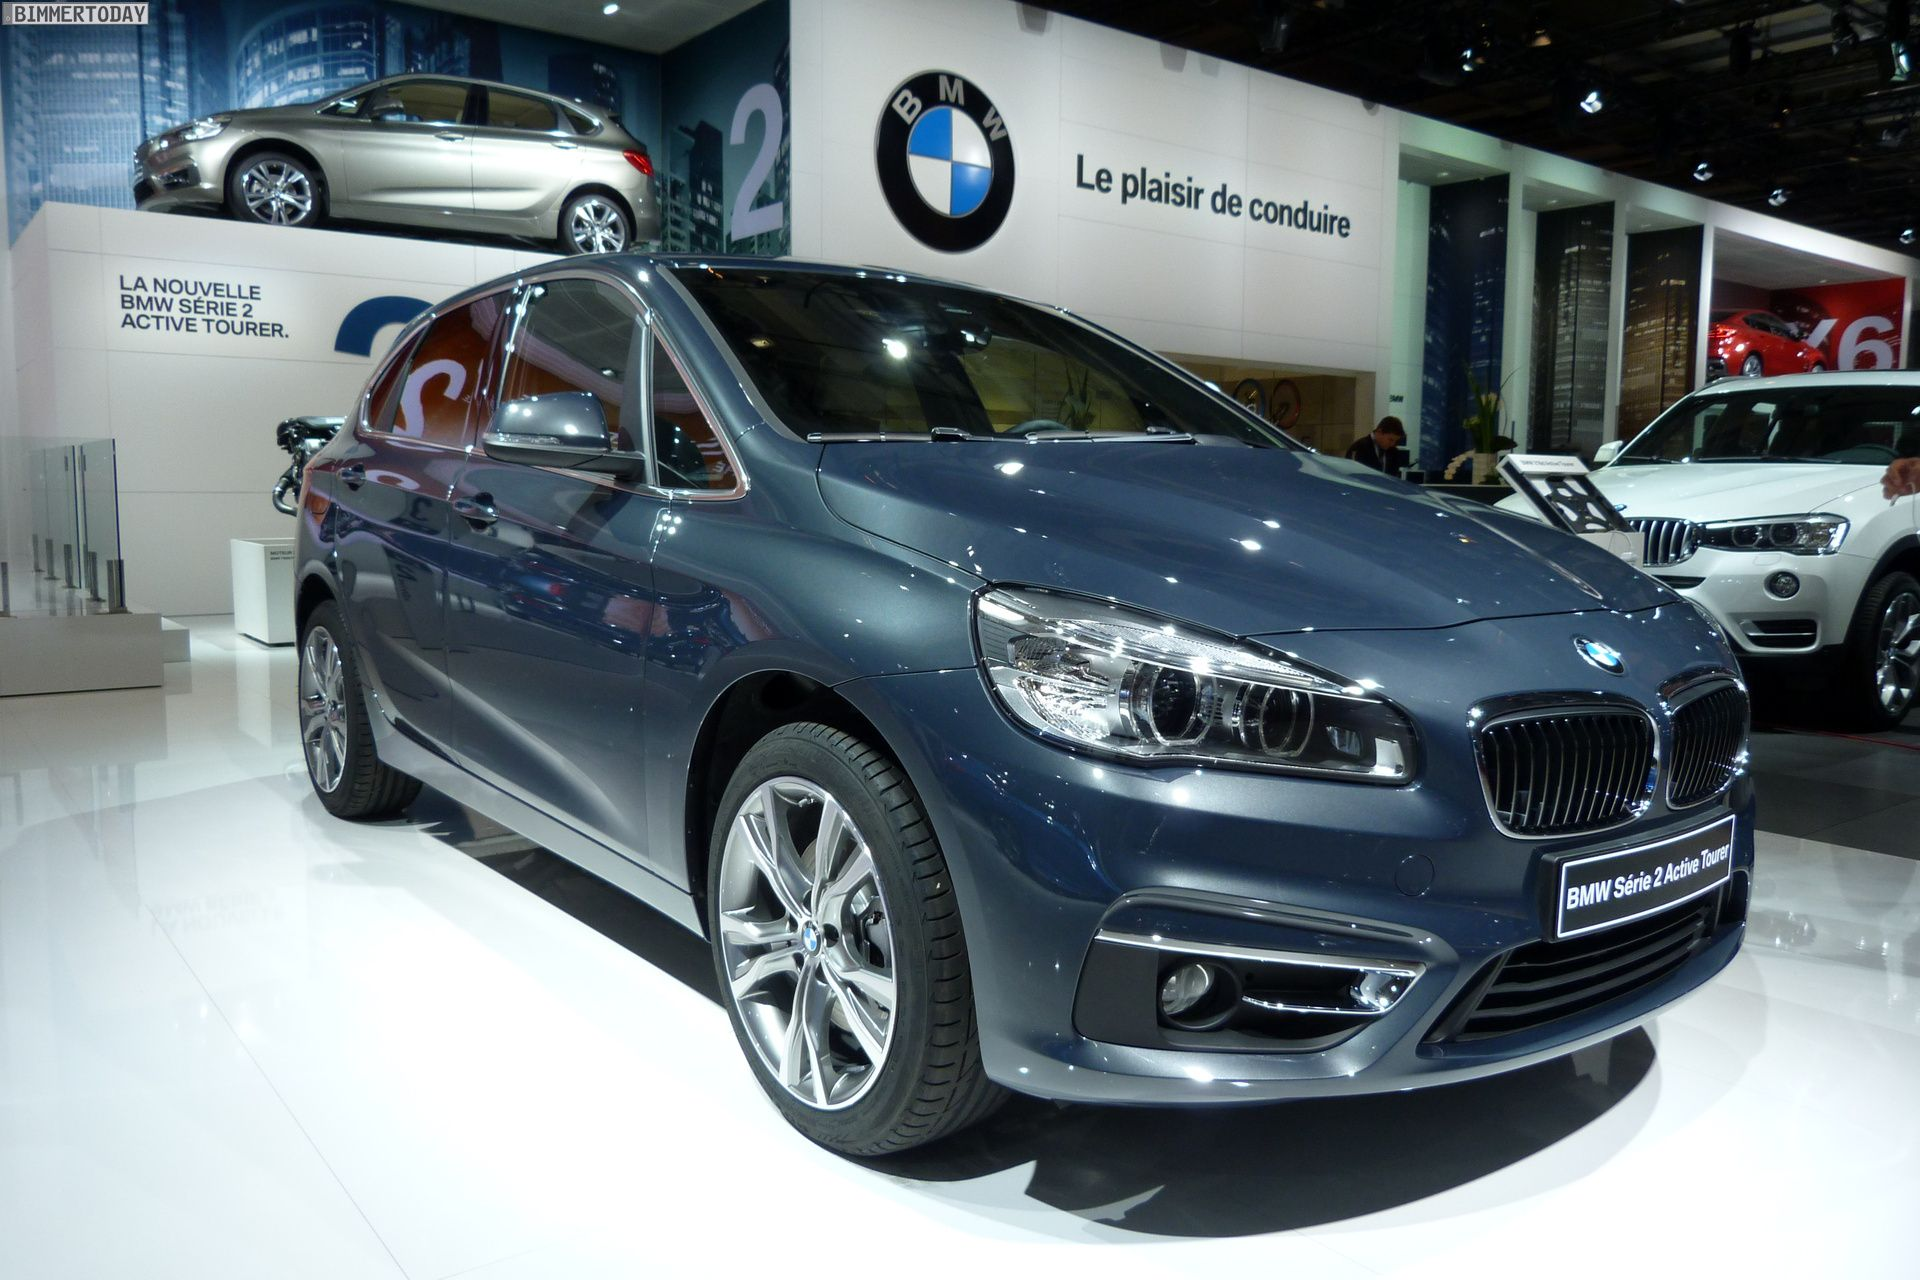 2014 bmw 2er active tourer f45 220d xdrive atlantikgrau paris autosalon live 01 bmw. Black Bedroom Furniture Sets. Home Design Ideas